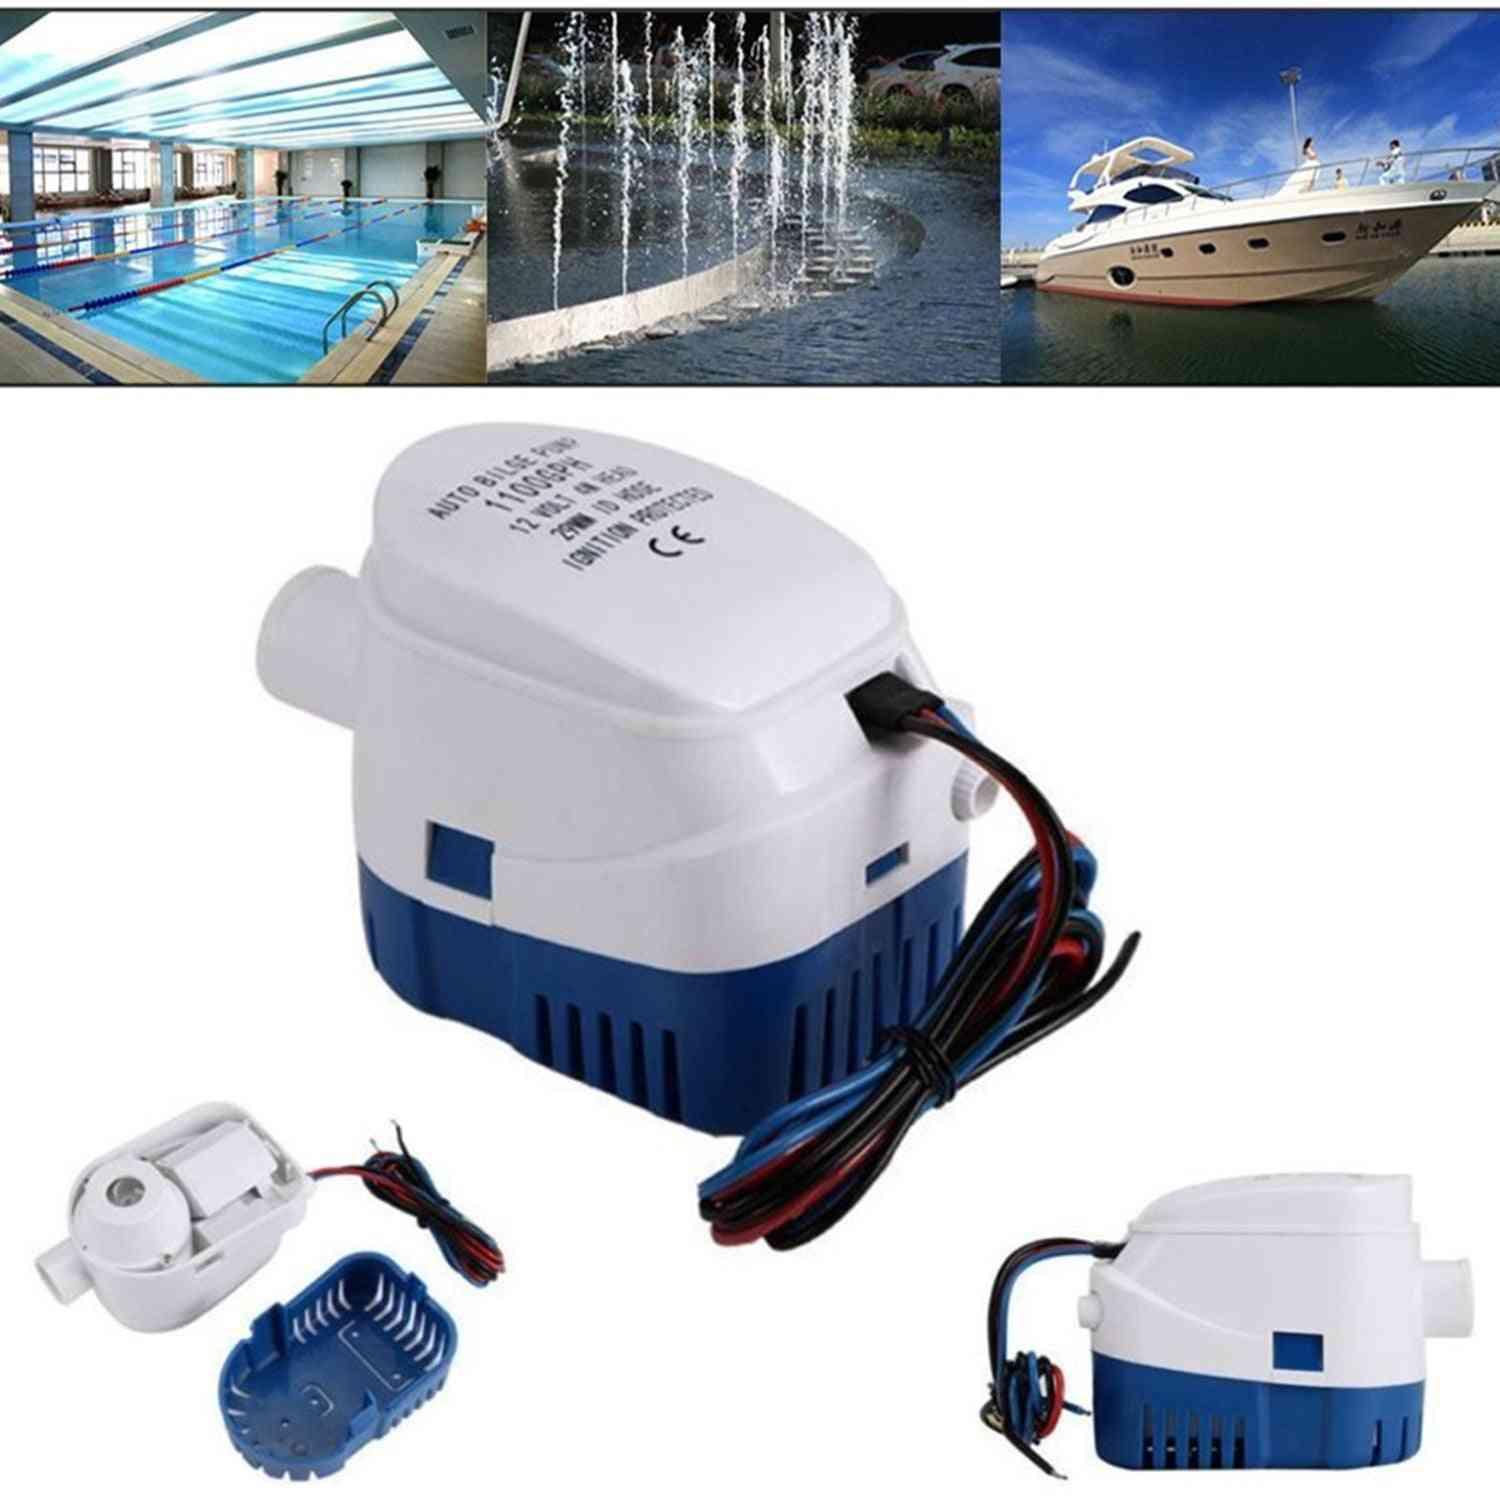 Stainless Steel, Bilge Auto Water Pump, Control Water Level, Pool Racing Boats Part